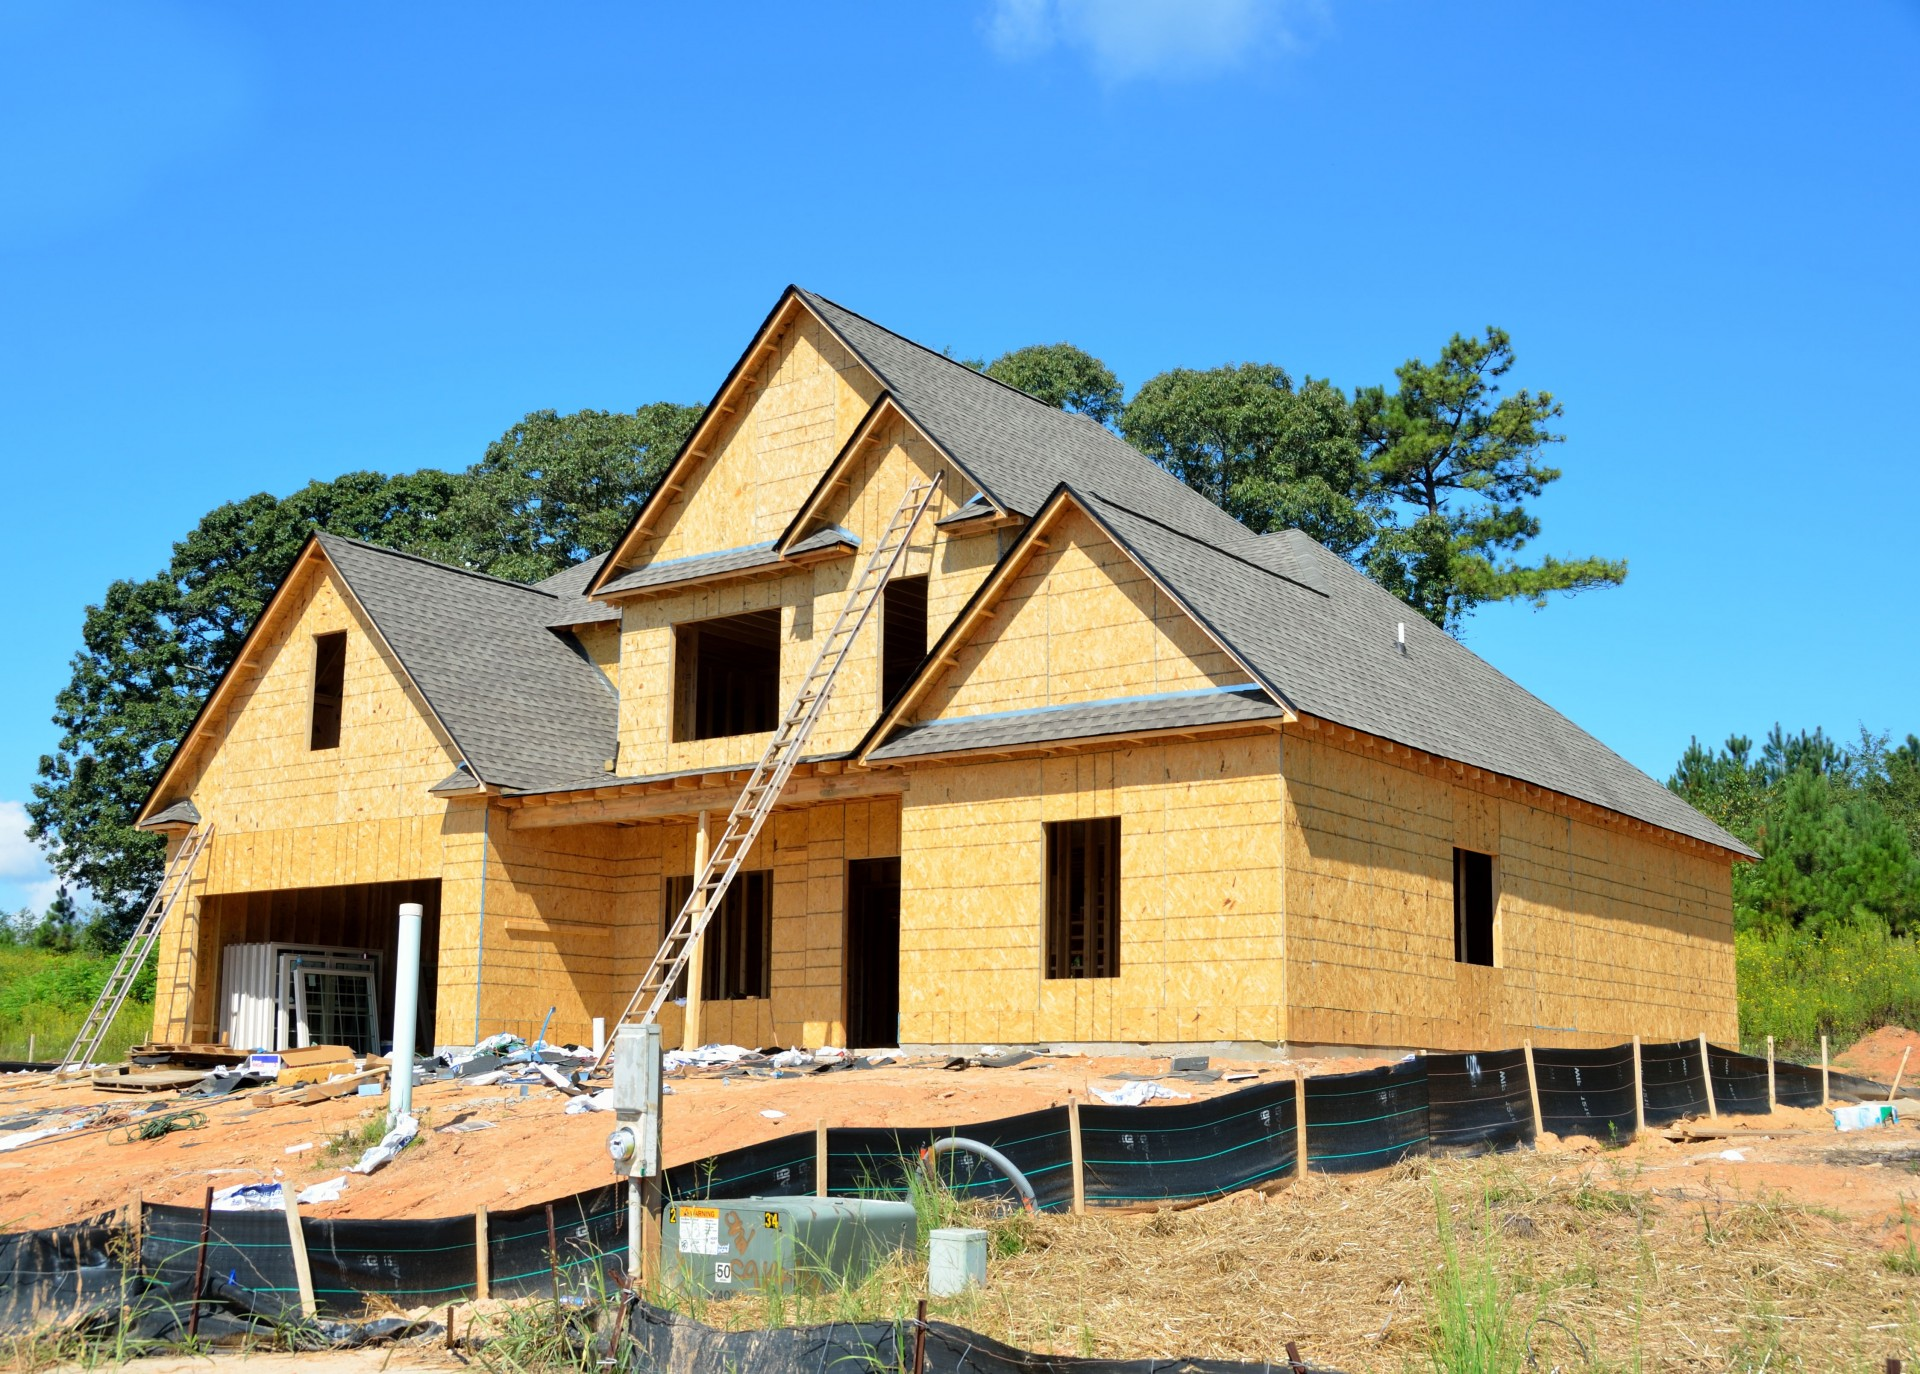 Hire General Contractor Milwaukee WI For Hassle Free Work